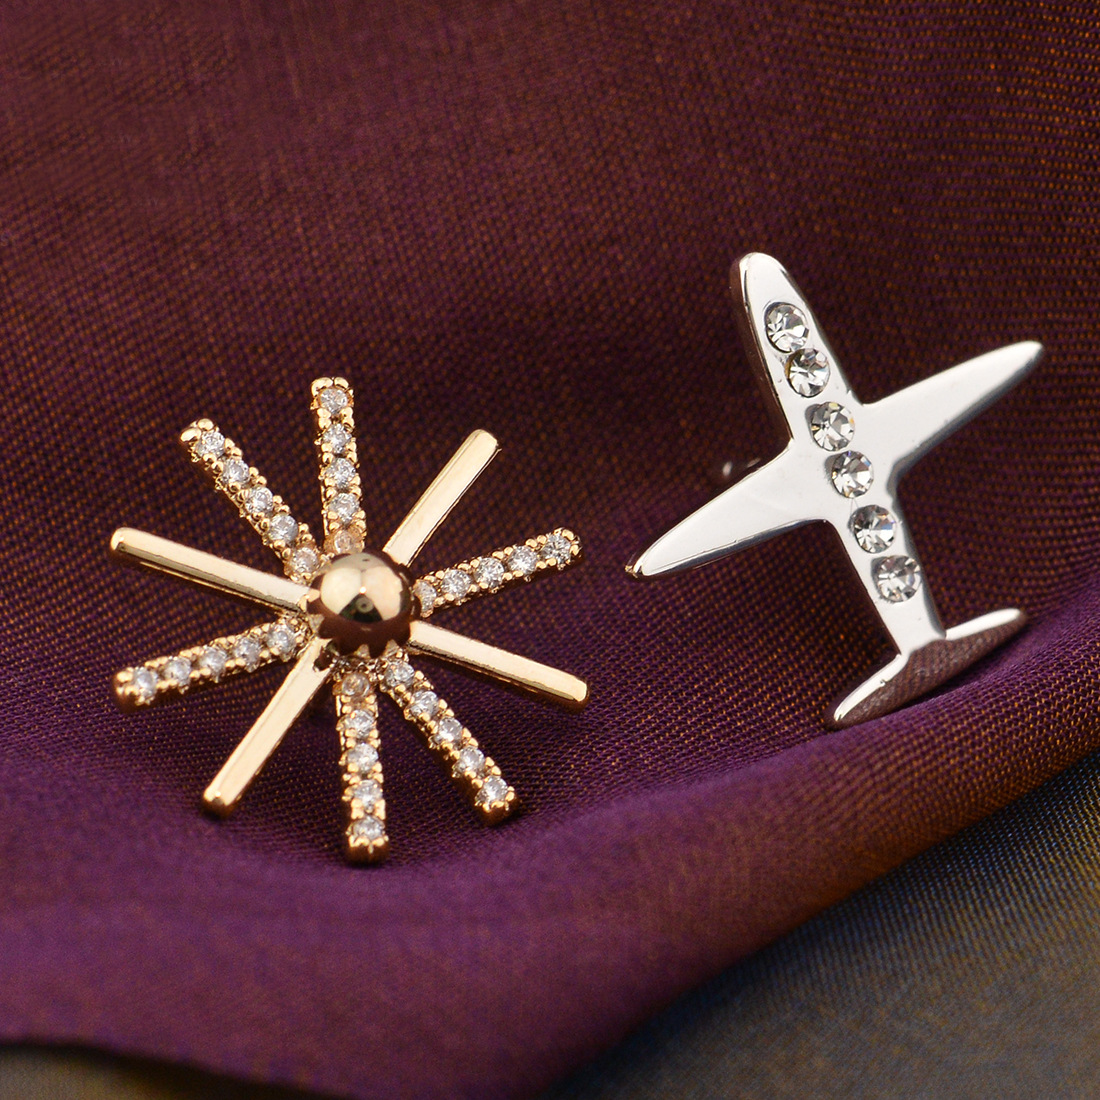 Elegant Synthetic Gem Detailed Sun and Airplane Brooch for Accessorizing Your Jackets